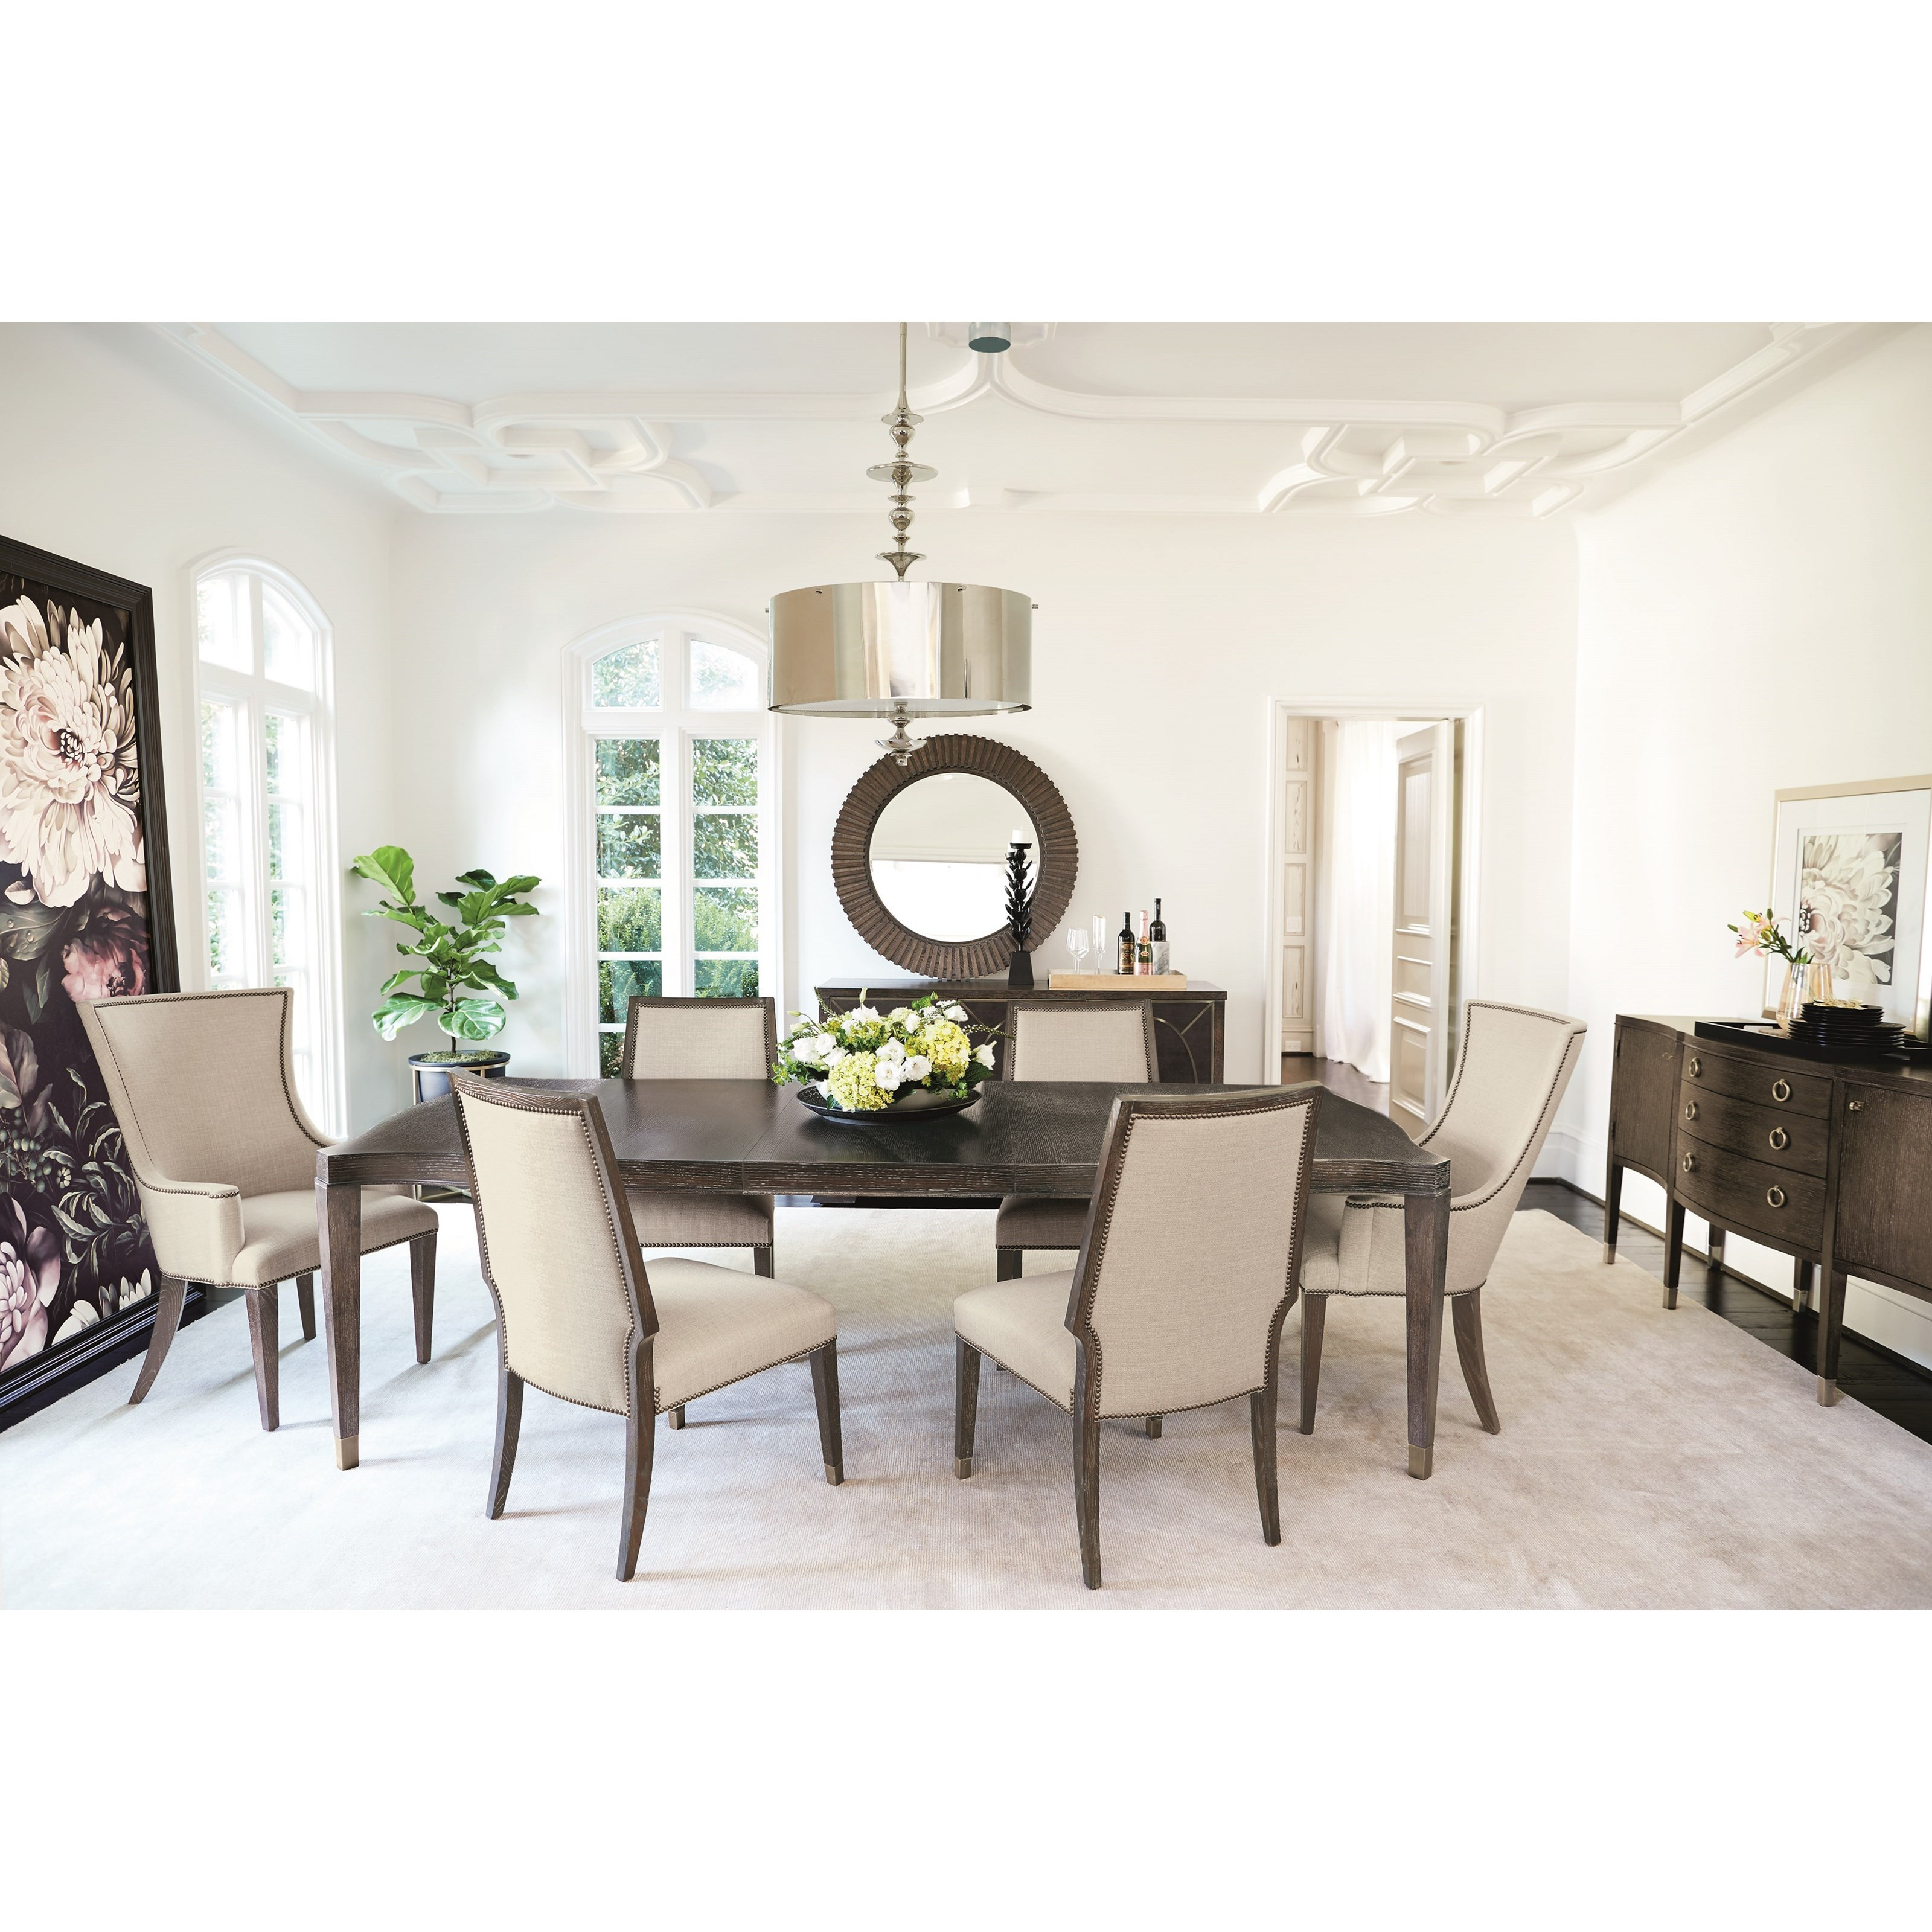 Clarendon Formal Dining Room Group at Williams & Kay